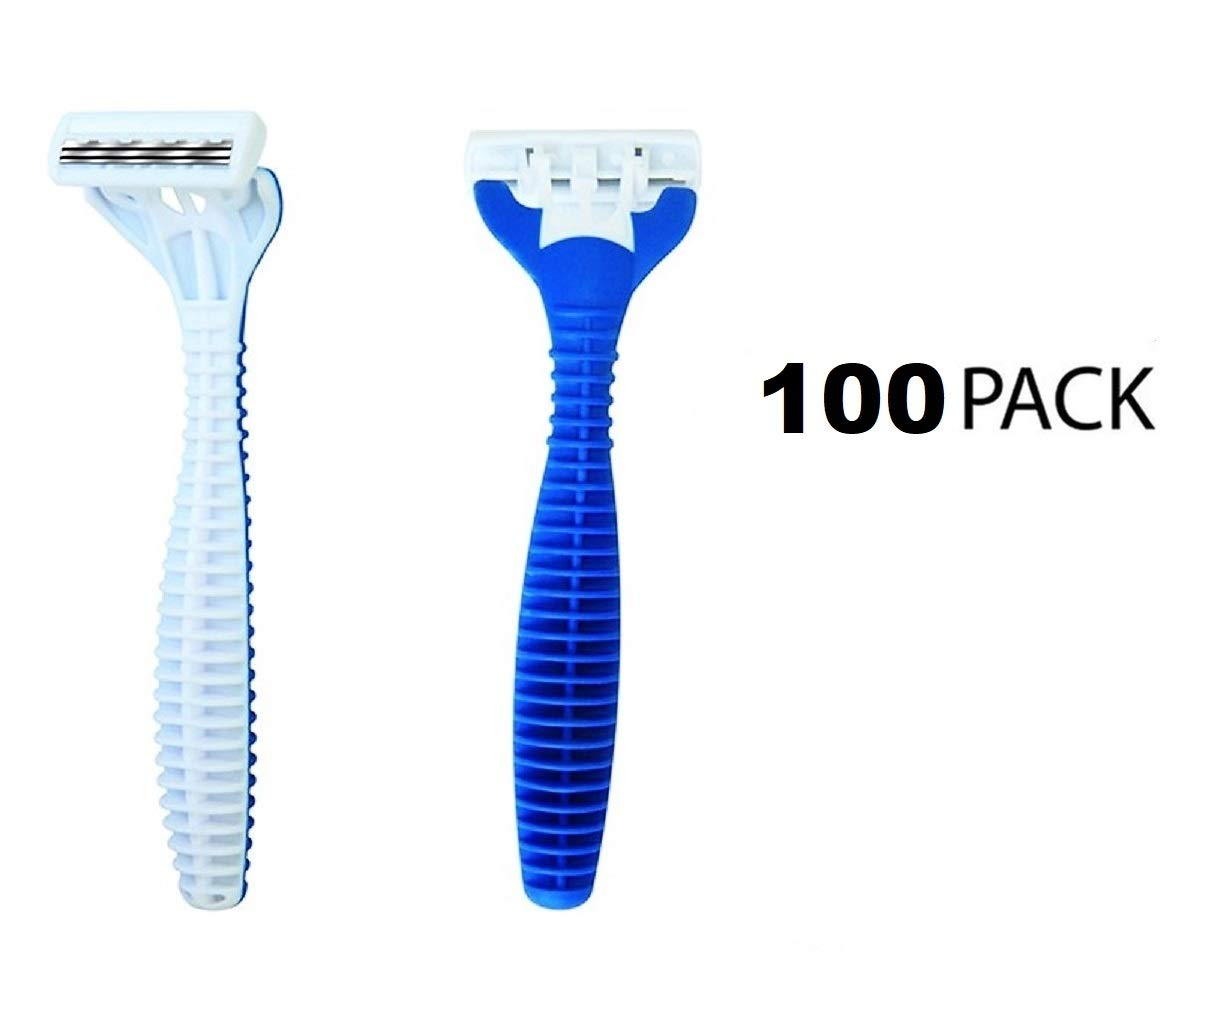 Spartan Razor -100 Triple Blade Men's Razors with Aloe Strip - Box of Disposable Safety Razors for Men with 3 Blades - 100 Pack